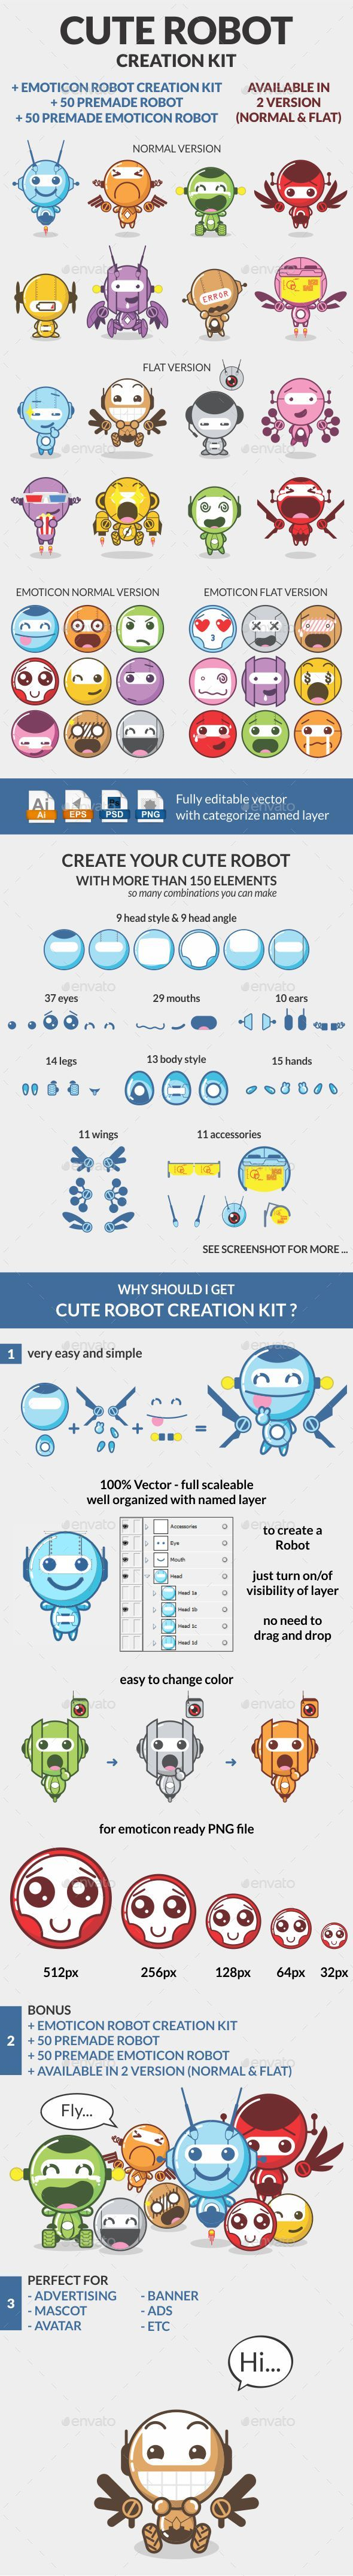 Cute Robot Creation Kit - Characters Illustrations